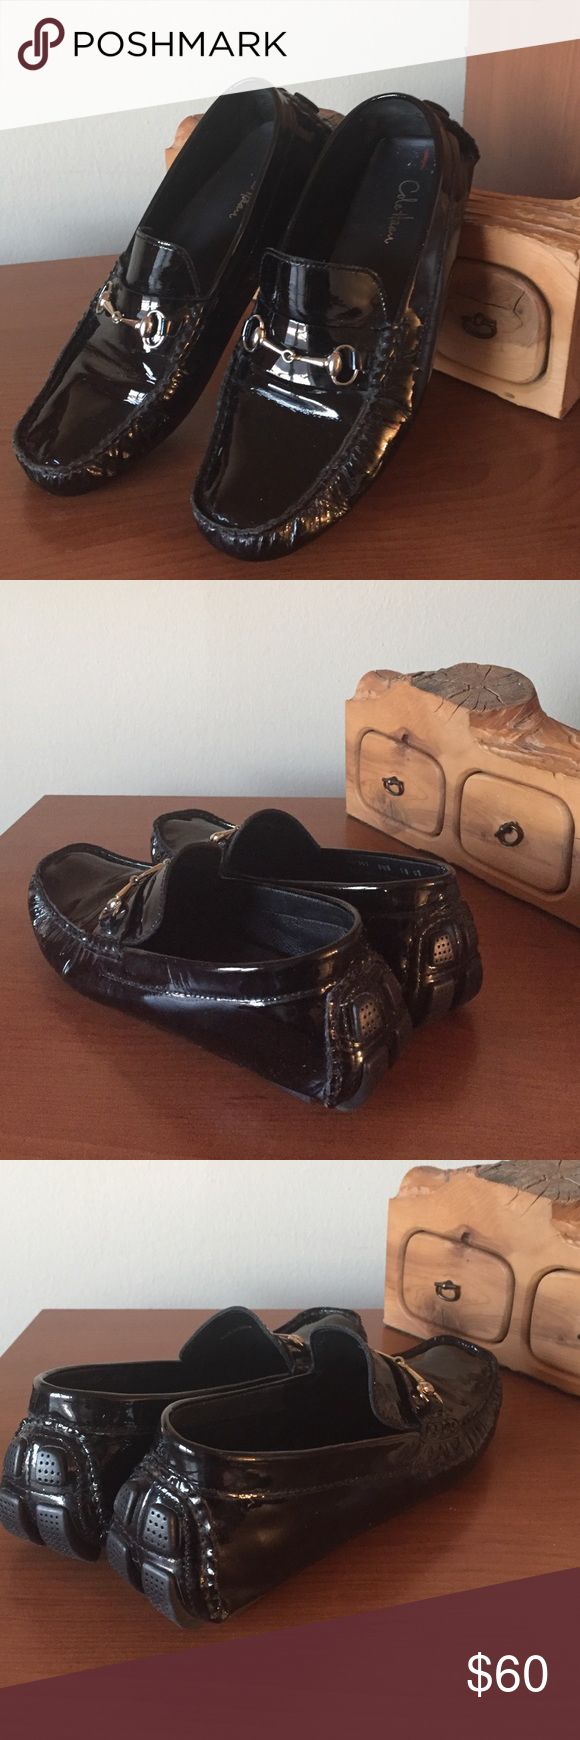 Cole Haan Driver Loafers Cole Haan Driver Loafers. Patent Leather in good used condition. Cole Haan Shoes Flats & Loafers